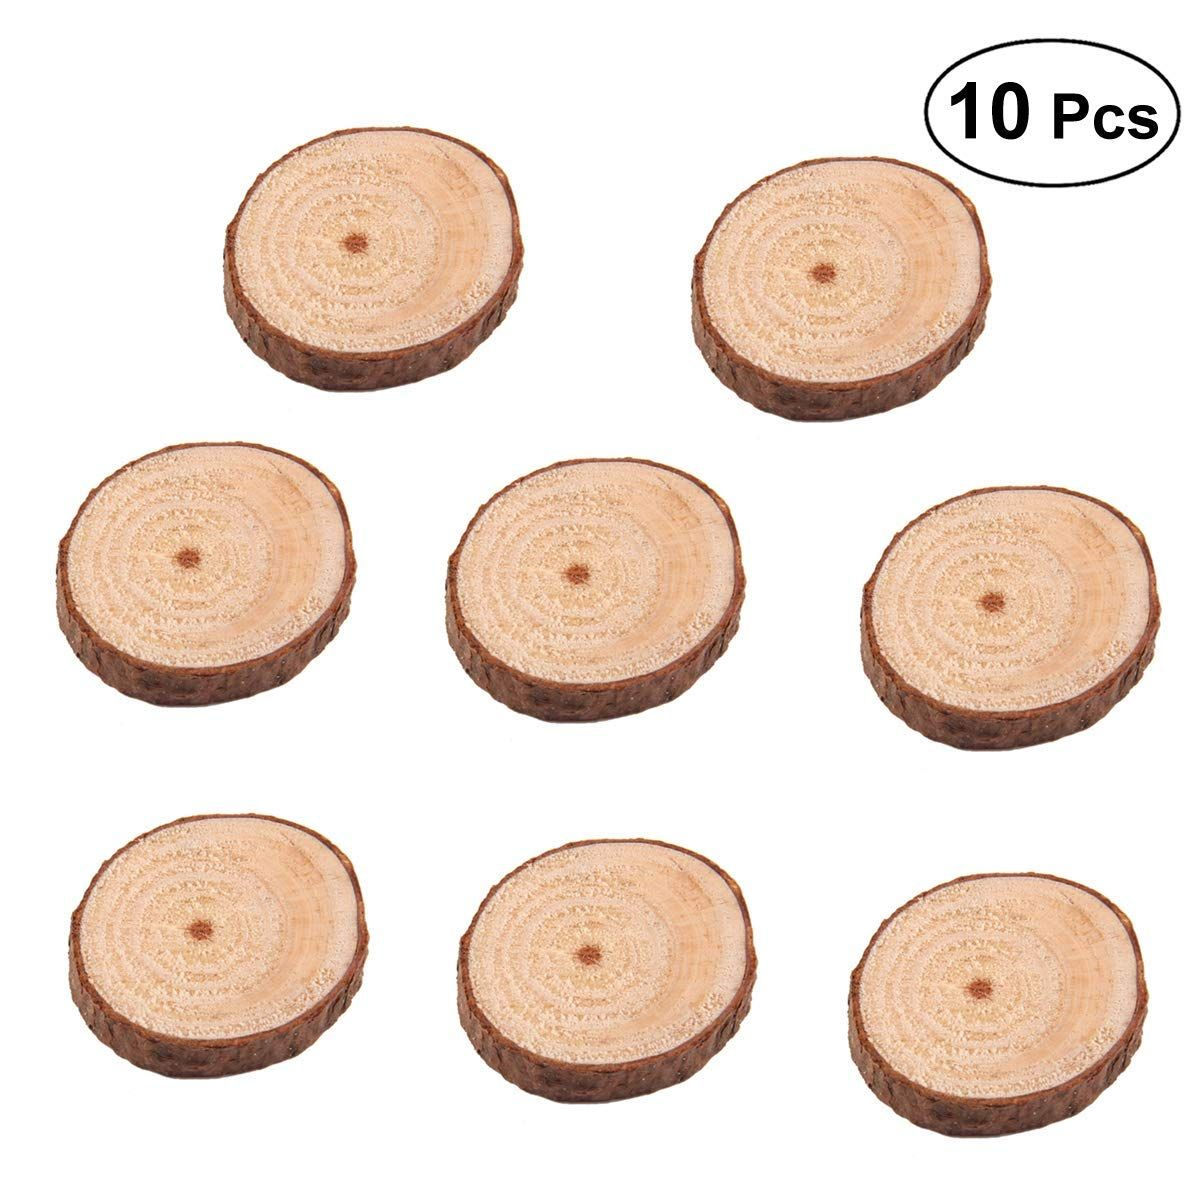 Yeahibaby 100pcs Natural Wood Slices Wooden Circles Unfinished Round Wood Pieces With Tree Bark Log Discs For Christmas We Wedding Crafts Diy Diy Crafts Crafts